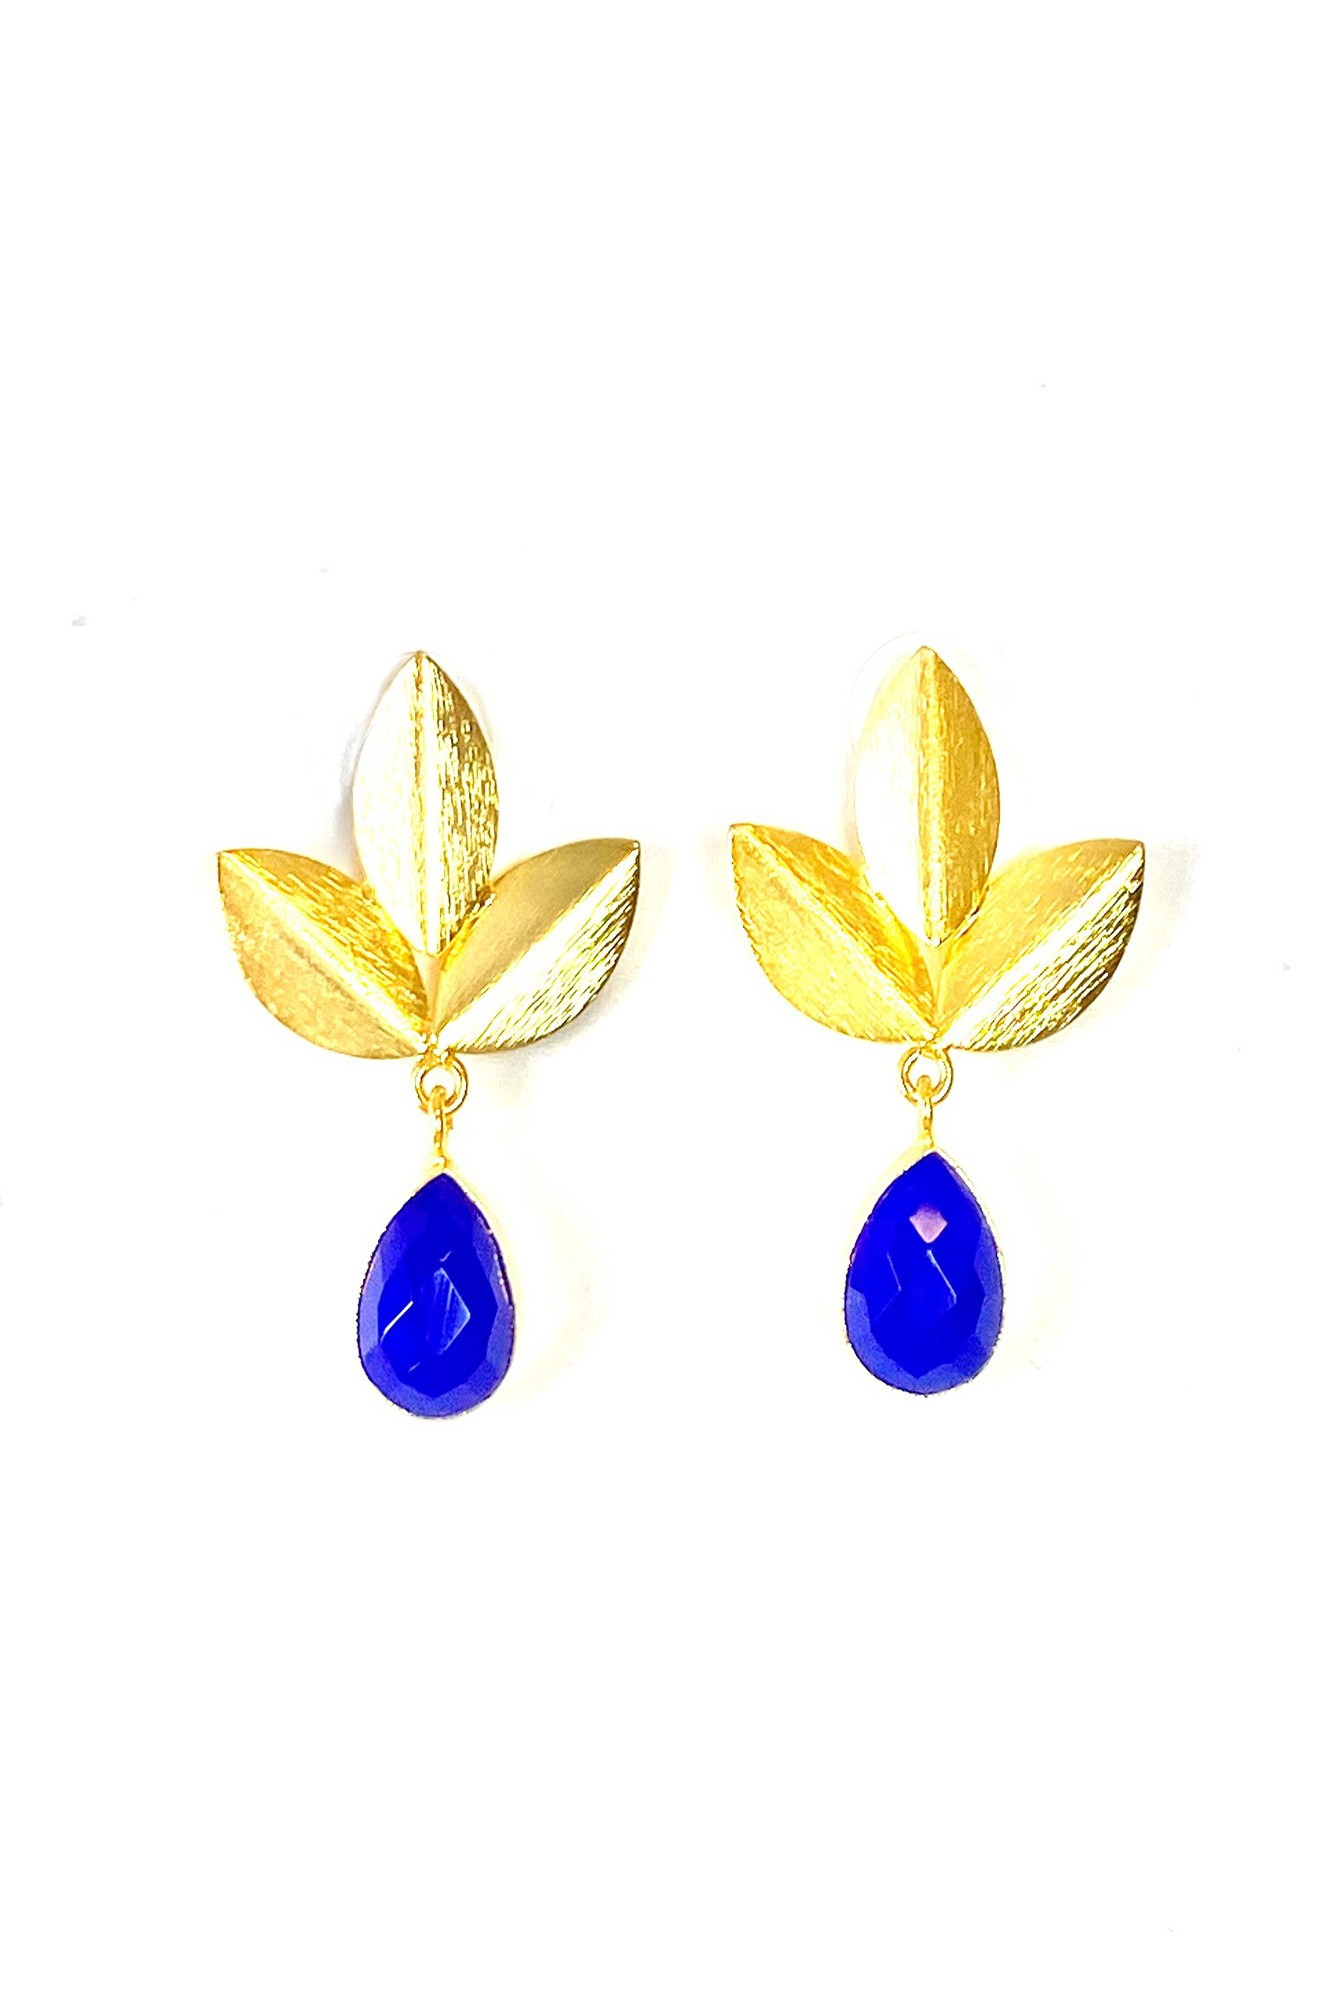 BLUE NUIT EARRINGS